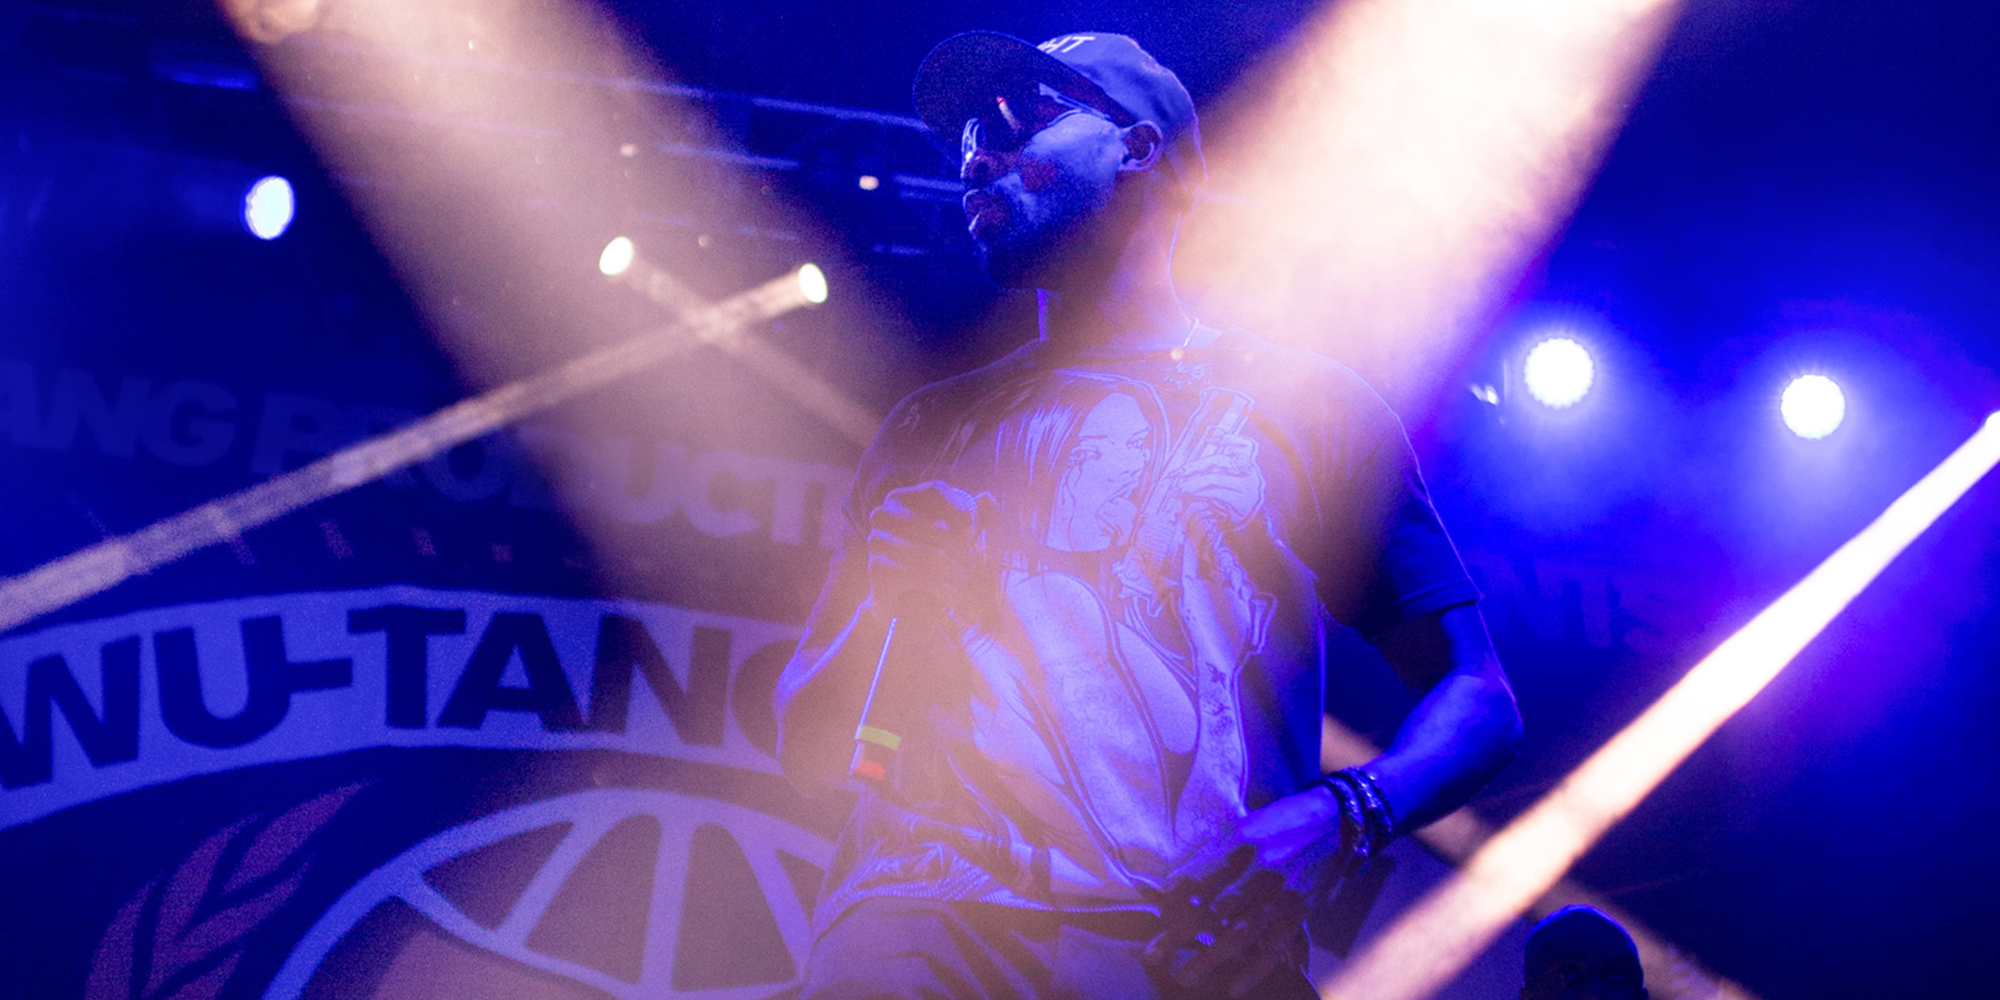 Dramatic image of RZA performing at concert